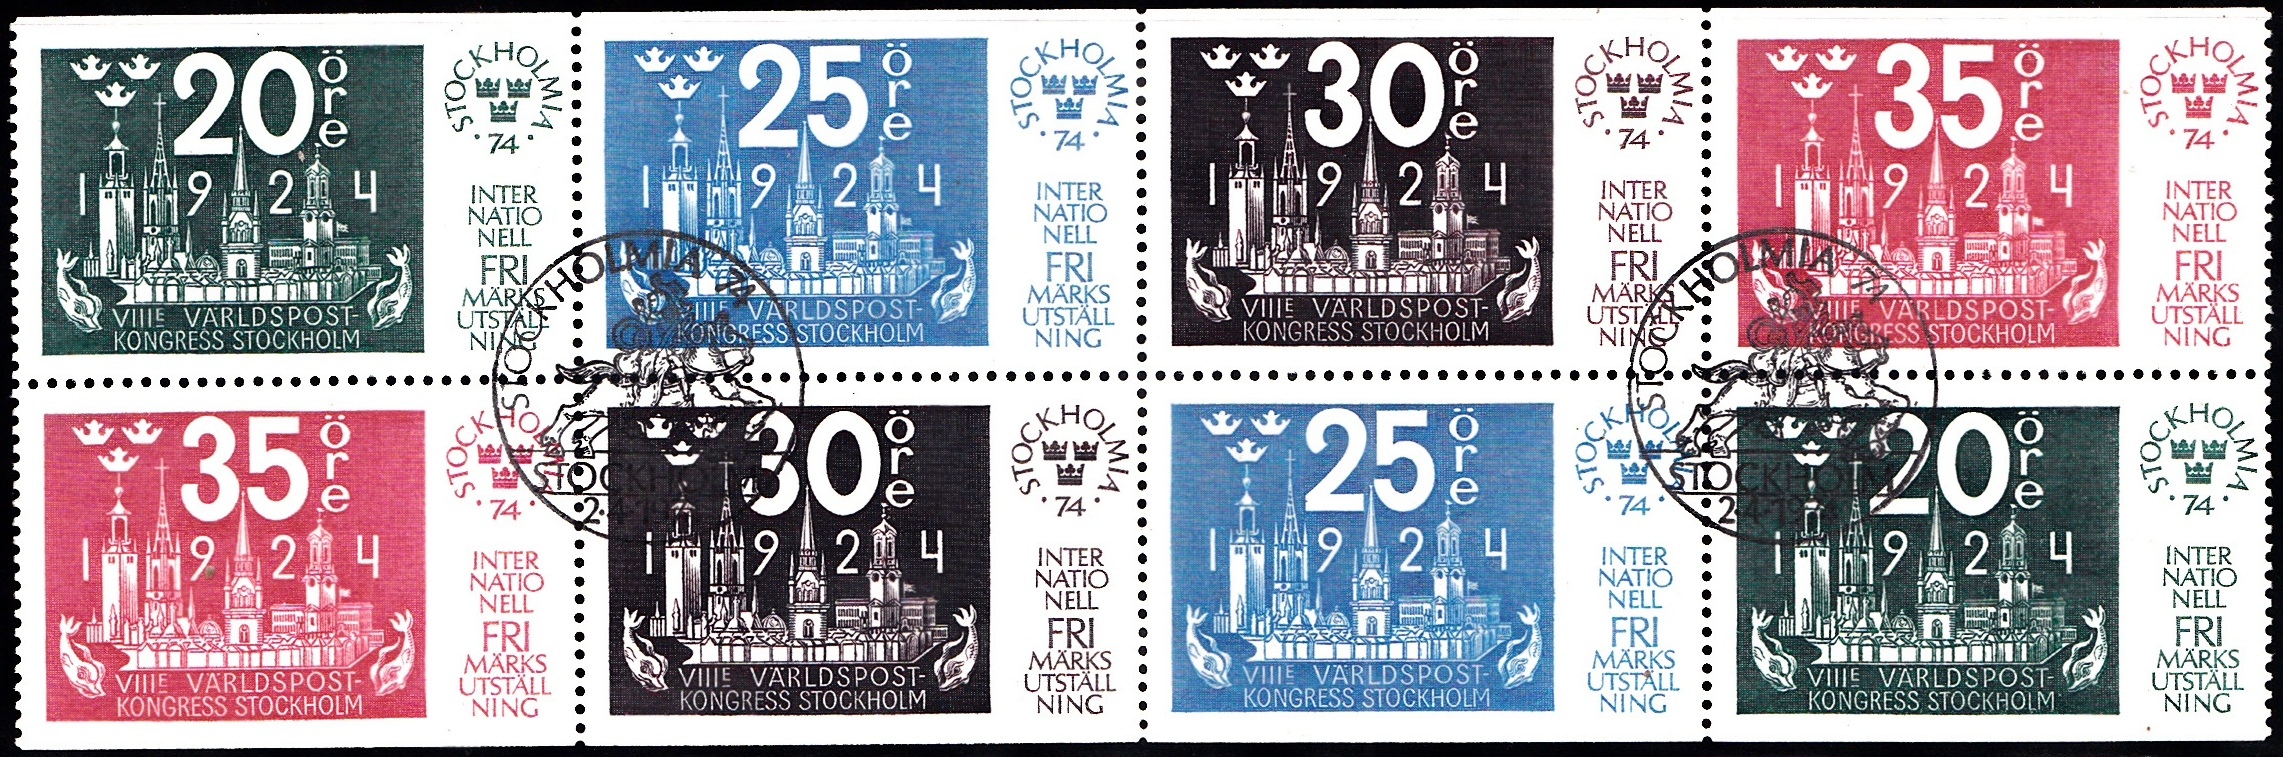 1041-1044 Stockholmia 74 [Philatelic Exhibition] Sweden Stamp Booklet Pane